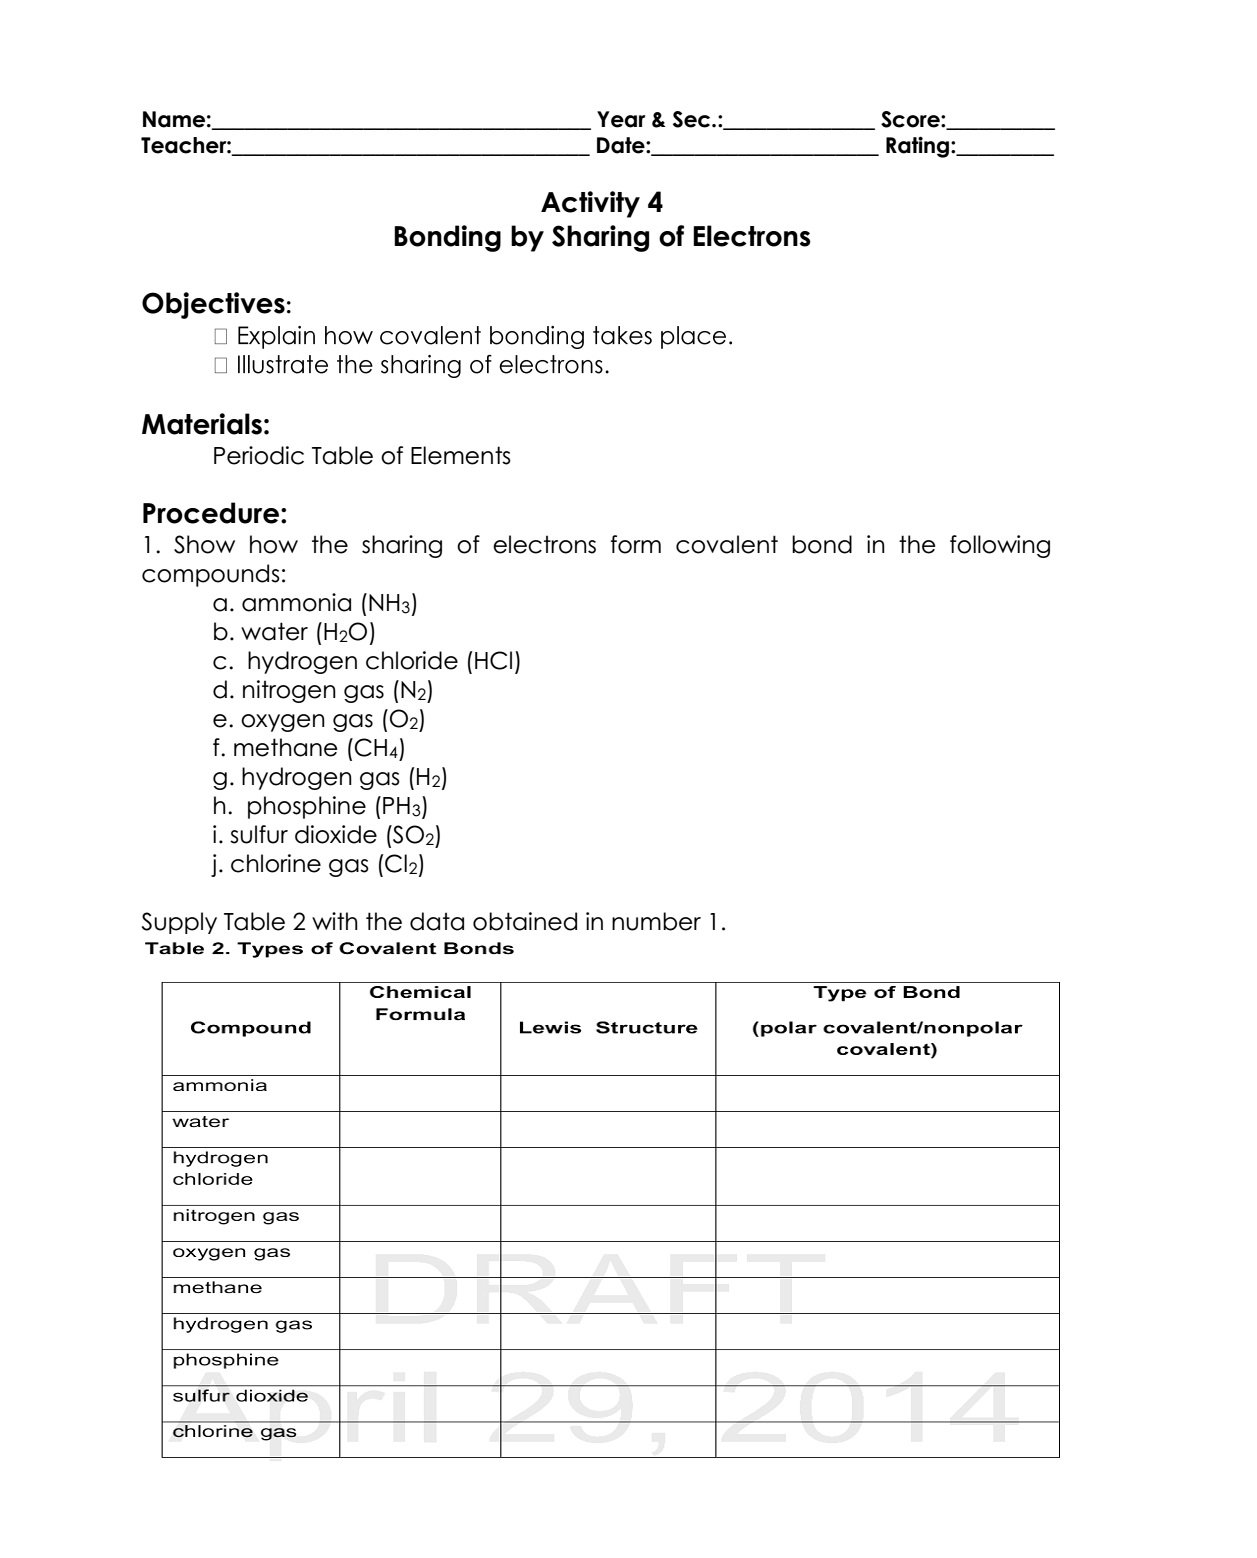 Science Concepts And Questions K To 12 Chemical Bonding Activities